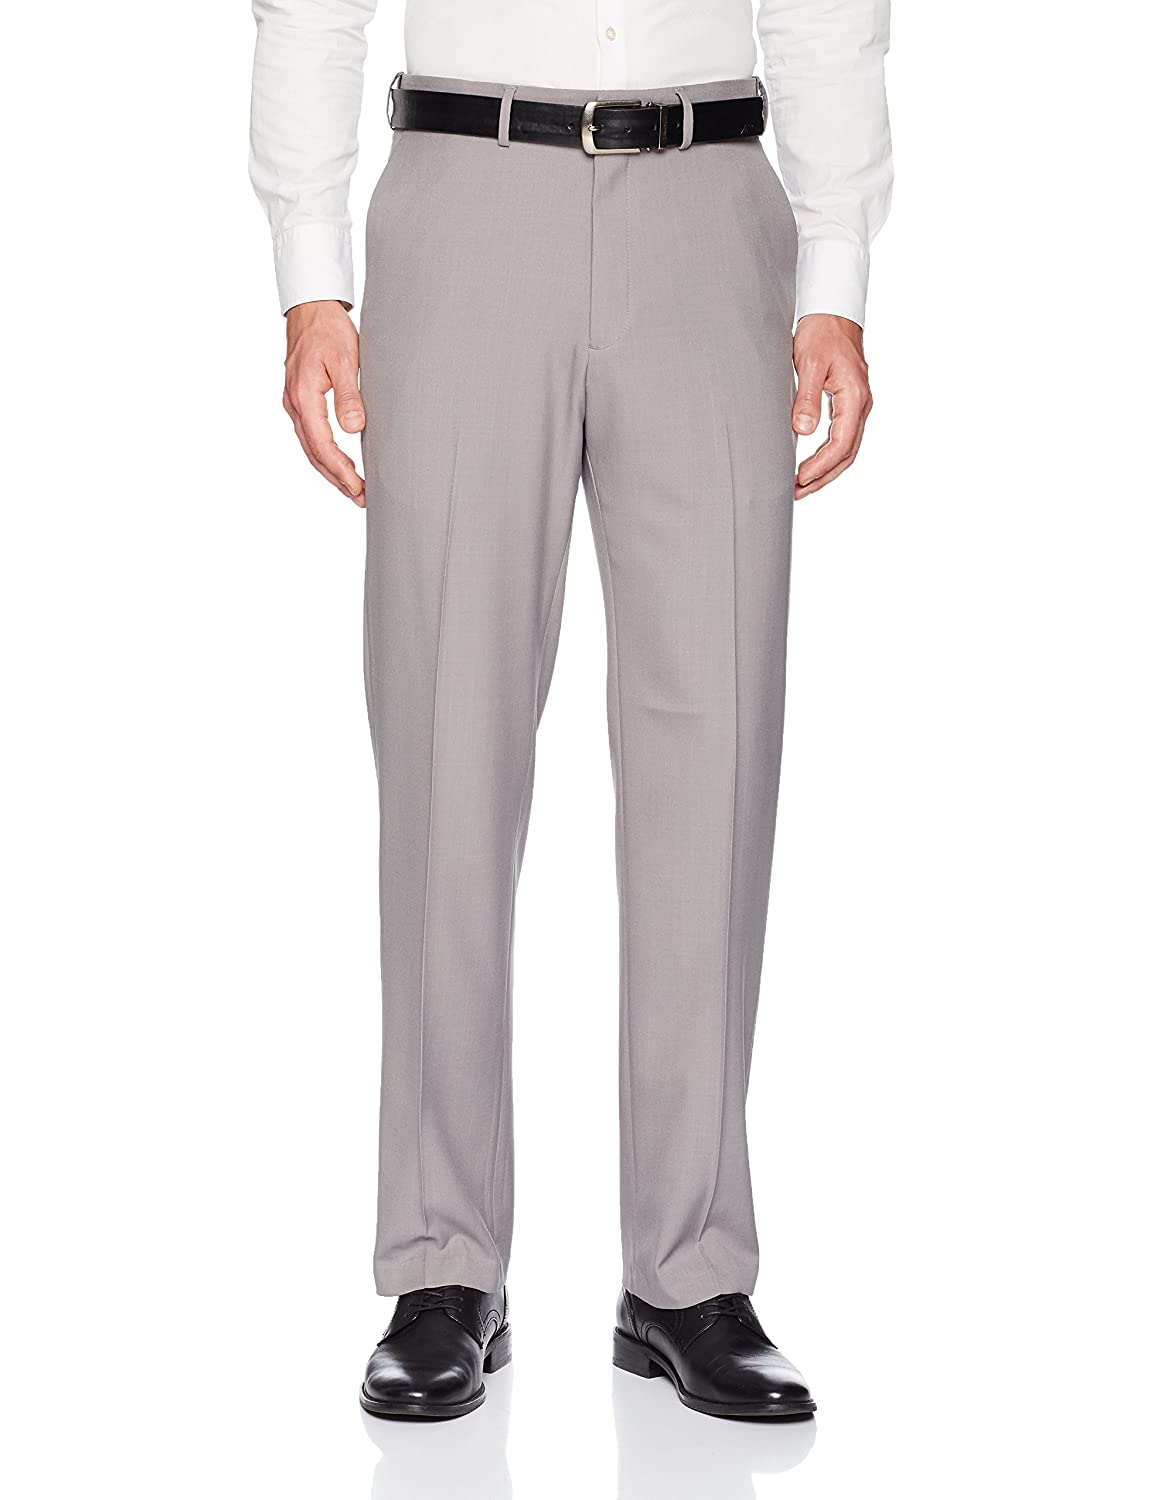 1920s Men's Pants, Trousers, Plus Fours, Knickers Haggar Mens Premium Comfort Classic Fit Flat Front Expandable Waist Pant $91.81 AT vintagedancer.com